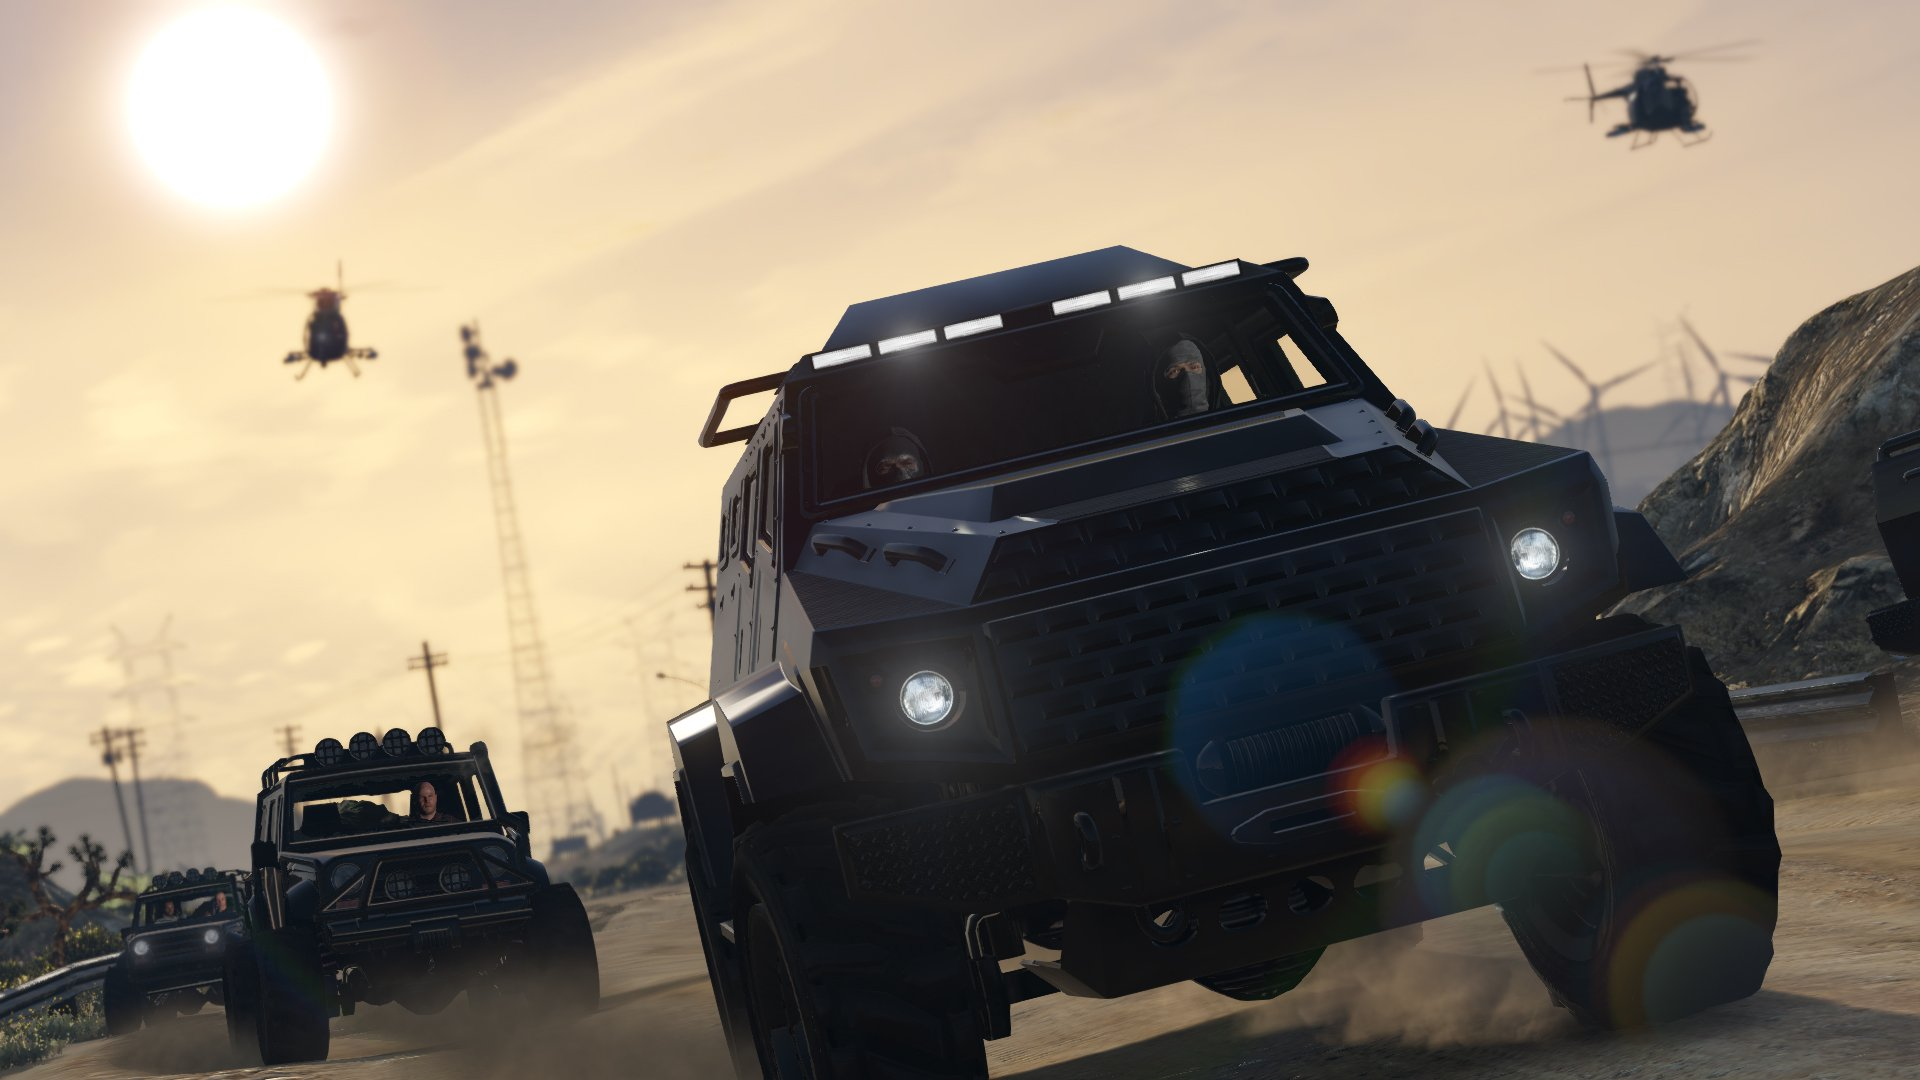 Grand Theft Auto V Backgrounds, Pictures, Images